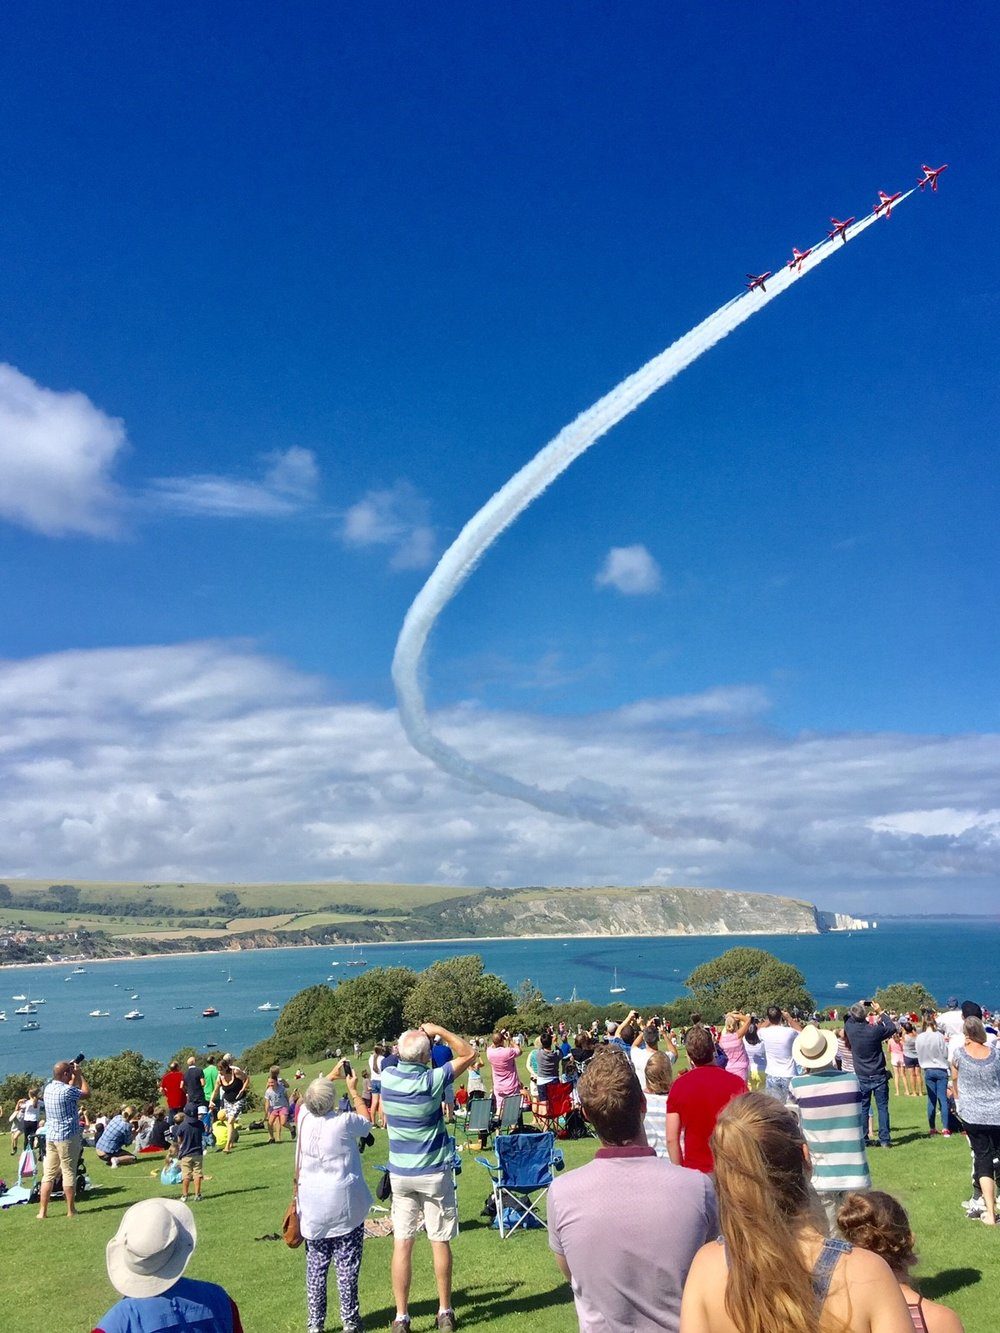 Summer is great back home in Swanage with lots of activities going on. After years of clashes and being away I finally was able to be around during carnival week and had a great time. Here is a picture from one afternoon watching the Red Arrows perform, shame I couldn't be sailing at the same time!